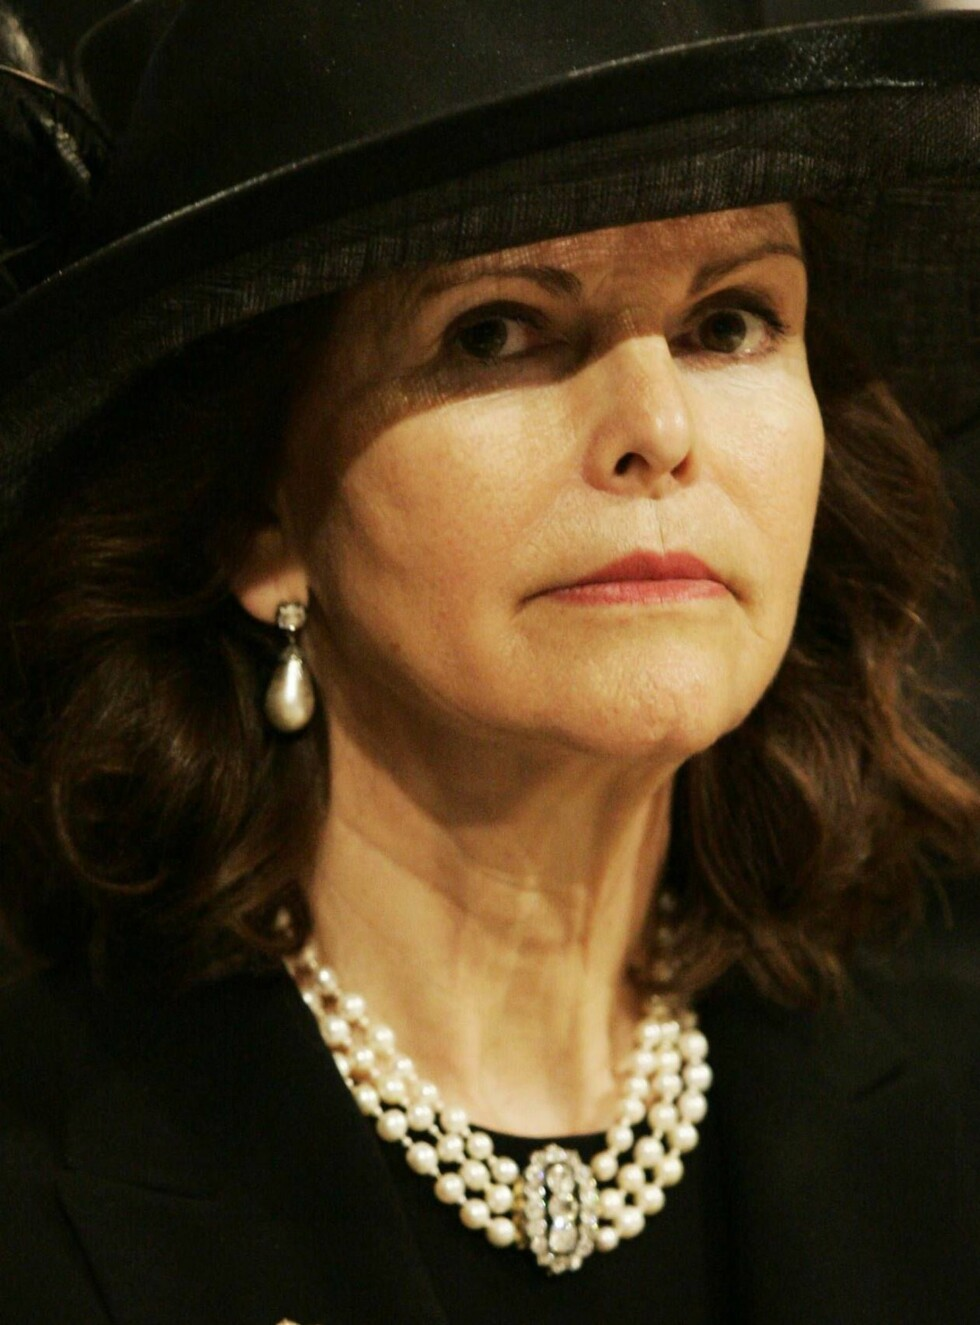 MONACO - APRIL 15: Queen Silvia of Sweden is seen inside the Cathedral at the funeral service of Monaco's Prince Rainier III at Monaco Cathedral on April 15, 2005 in Monte Carlo, Monaco. Prince Rainier III ruled the tiny Mediterranean principality for mor Foto: All Over Press